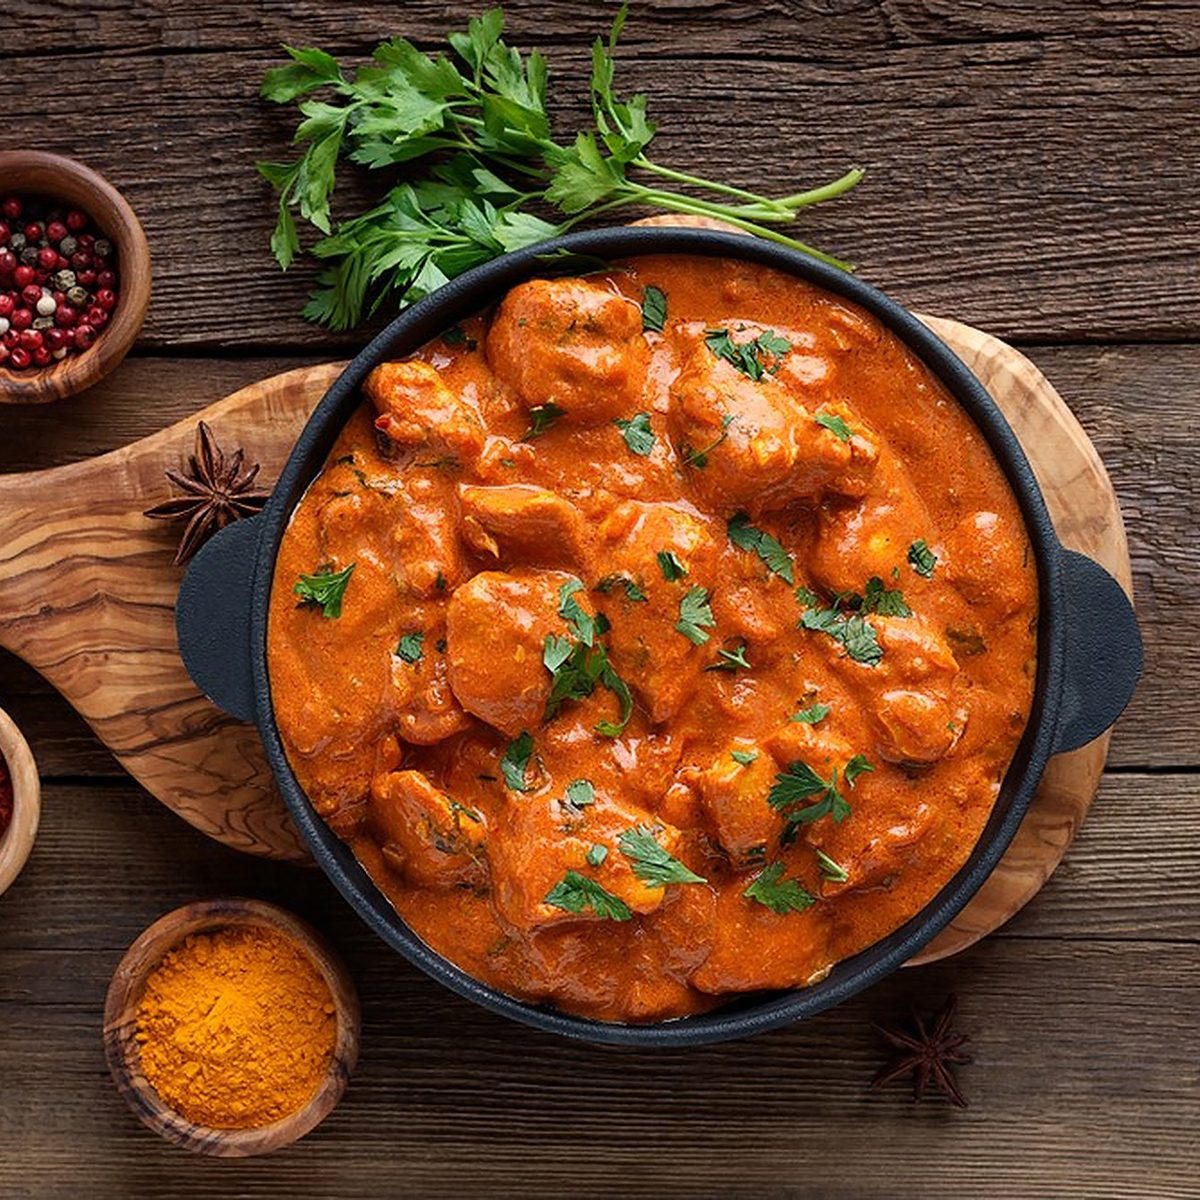 indian main dishes Tasty Butter Chicken Curry Dish From Indian Cuisine.